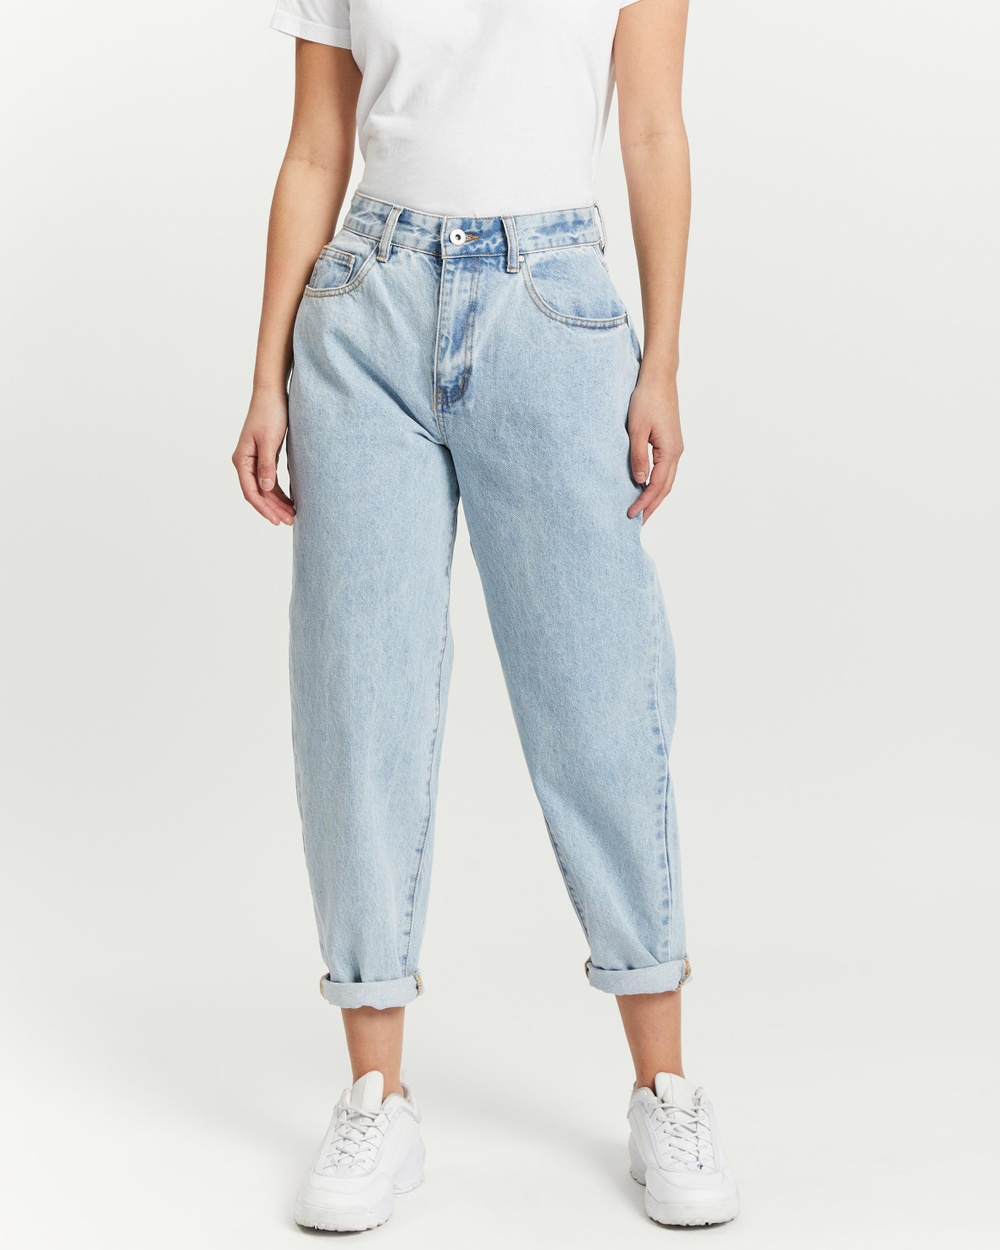 Cotton On Petite Slouch Mom Jeans High-Waisted Roadknight Blue Australia